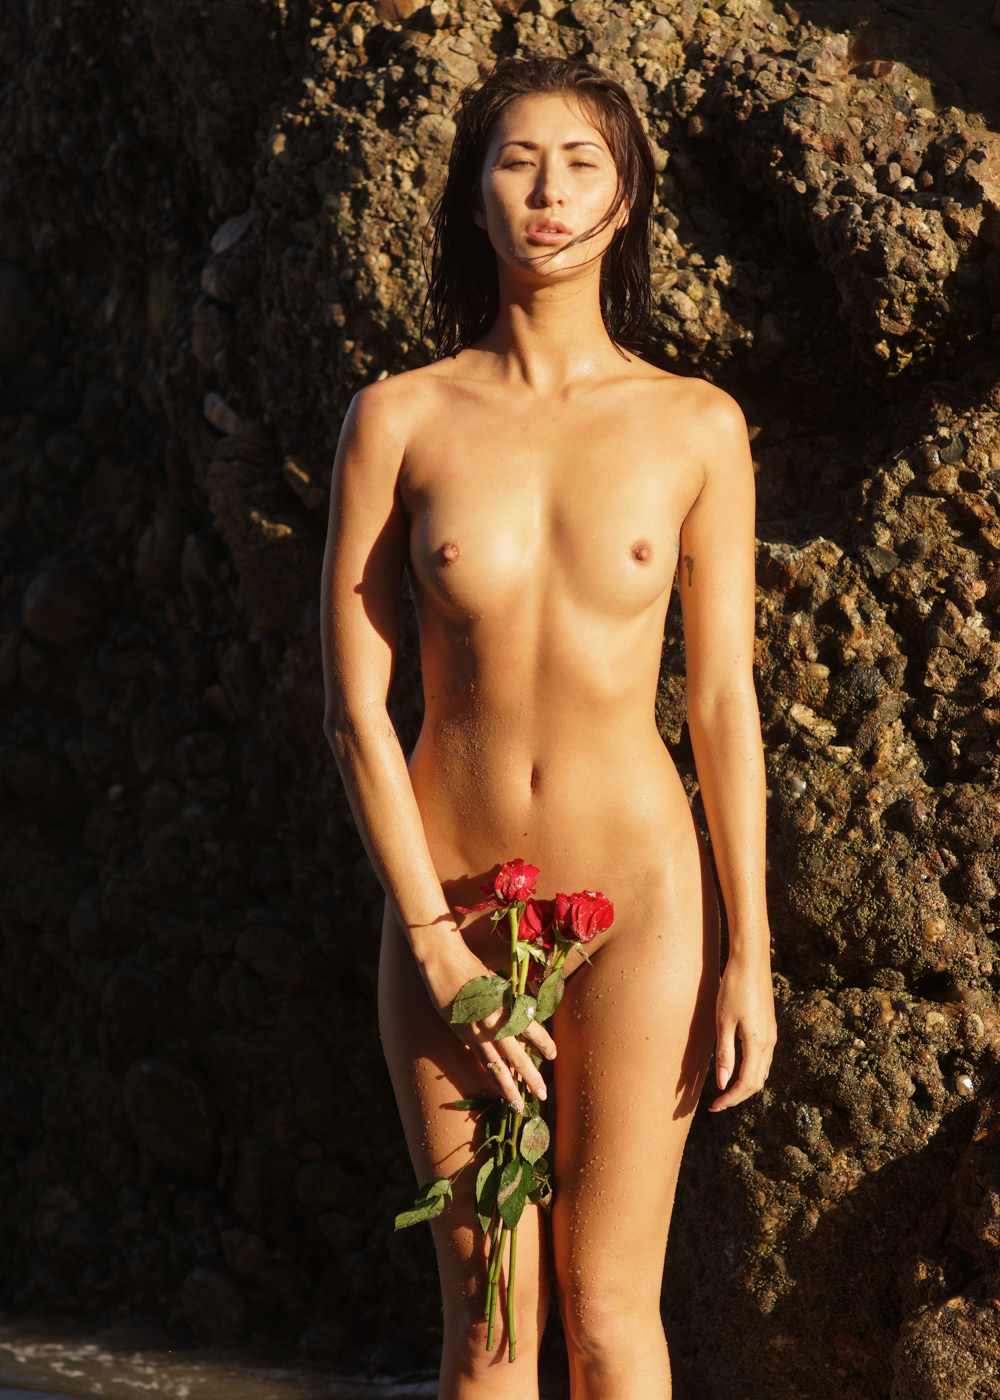 Kiss For a Rose Women  nudes nude art nude models lionsmag lions magazine lingerie body art body bikini beachwear beach babes artwork art   // lionsmag.com - premium nude photography magazine